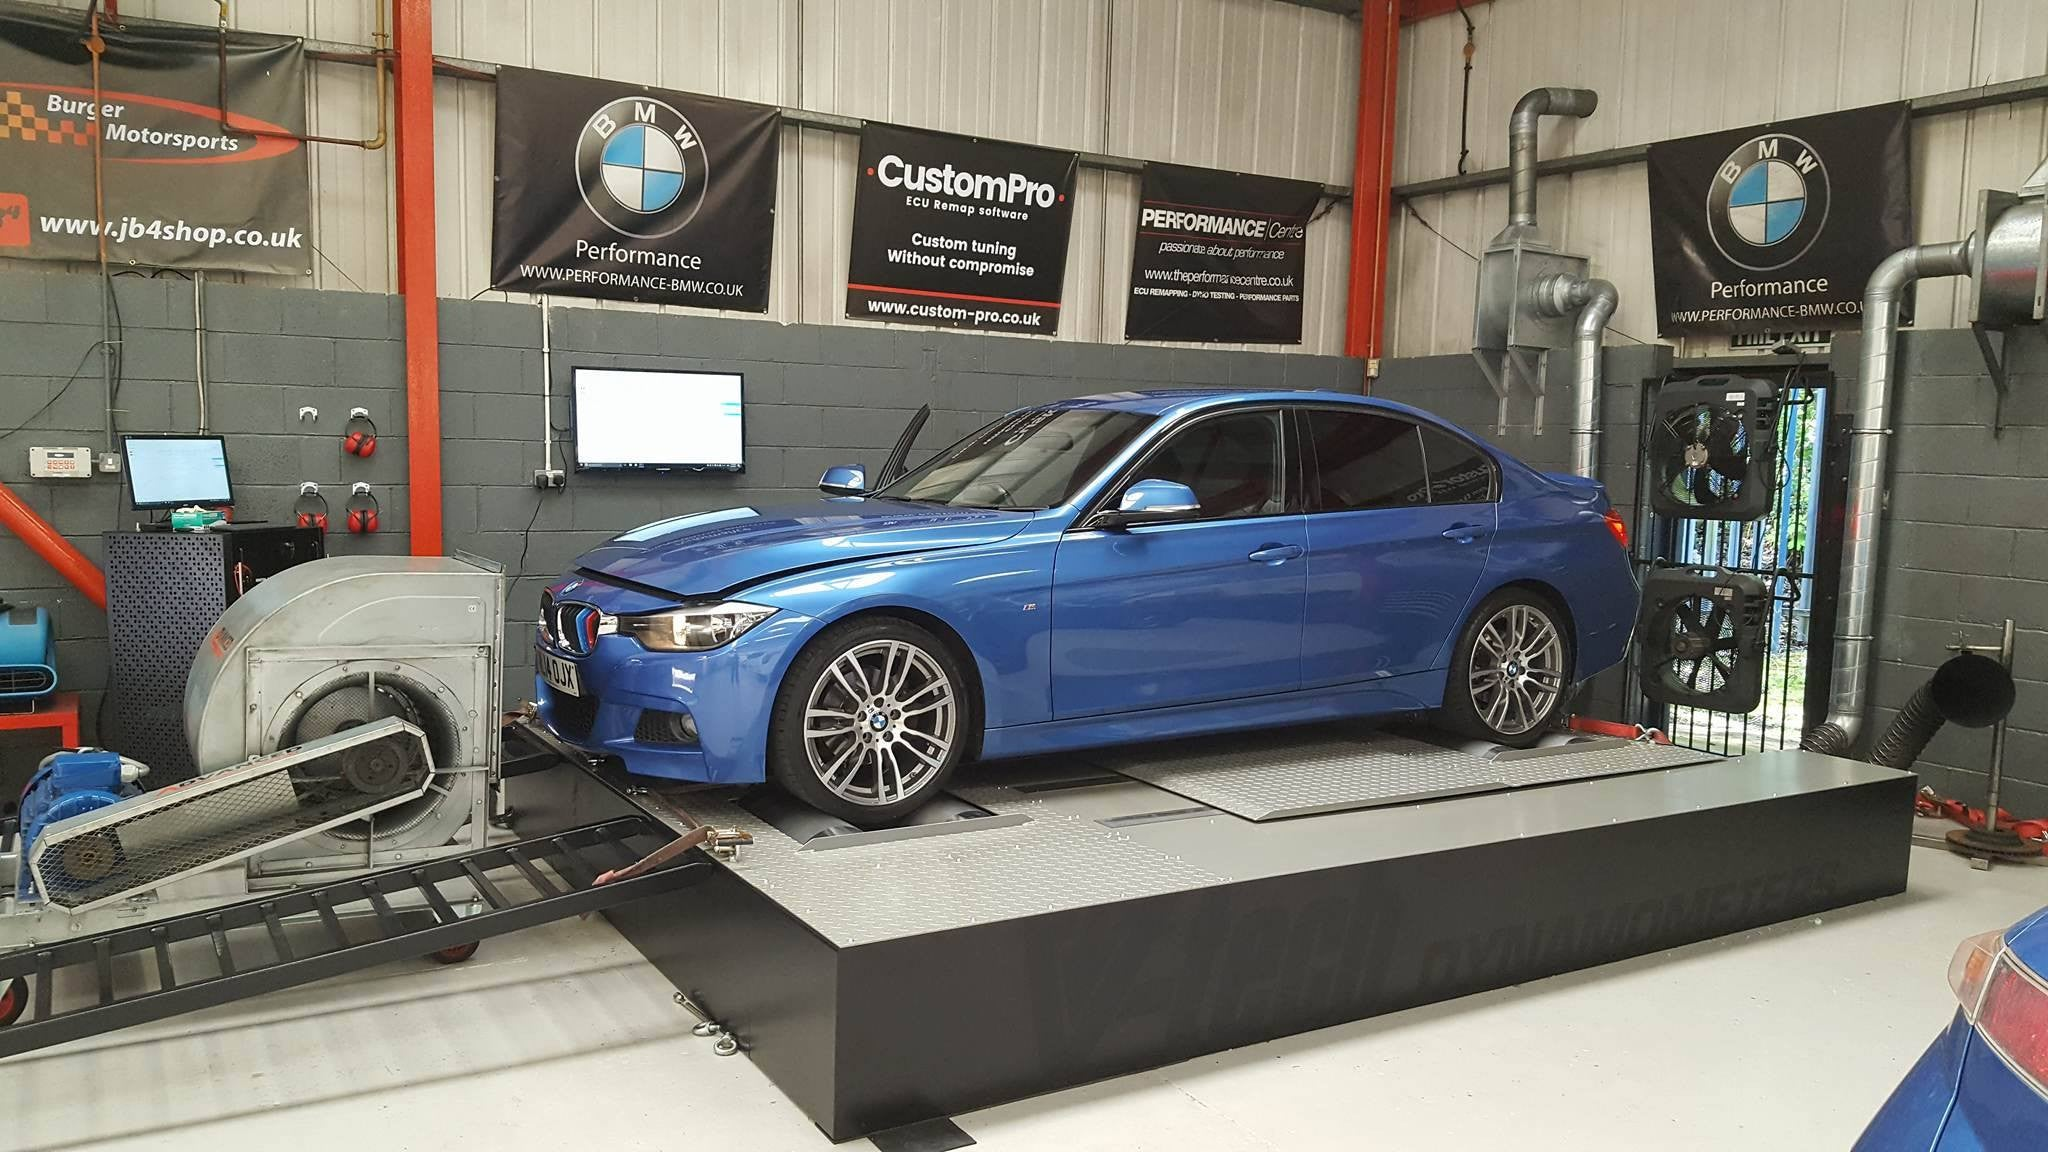 BMW 320d F30 - CustomPro remap